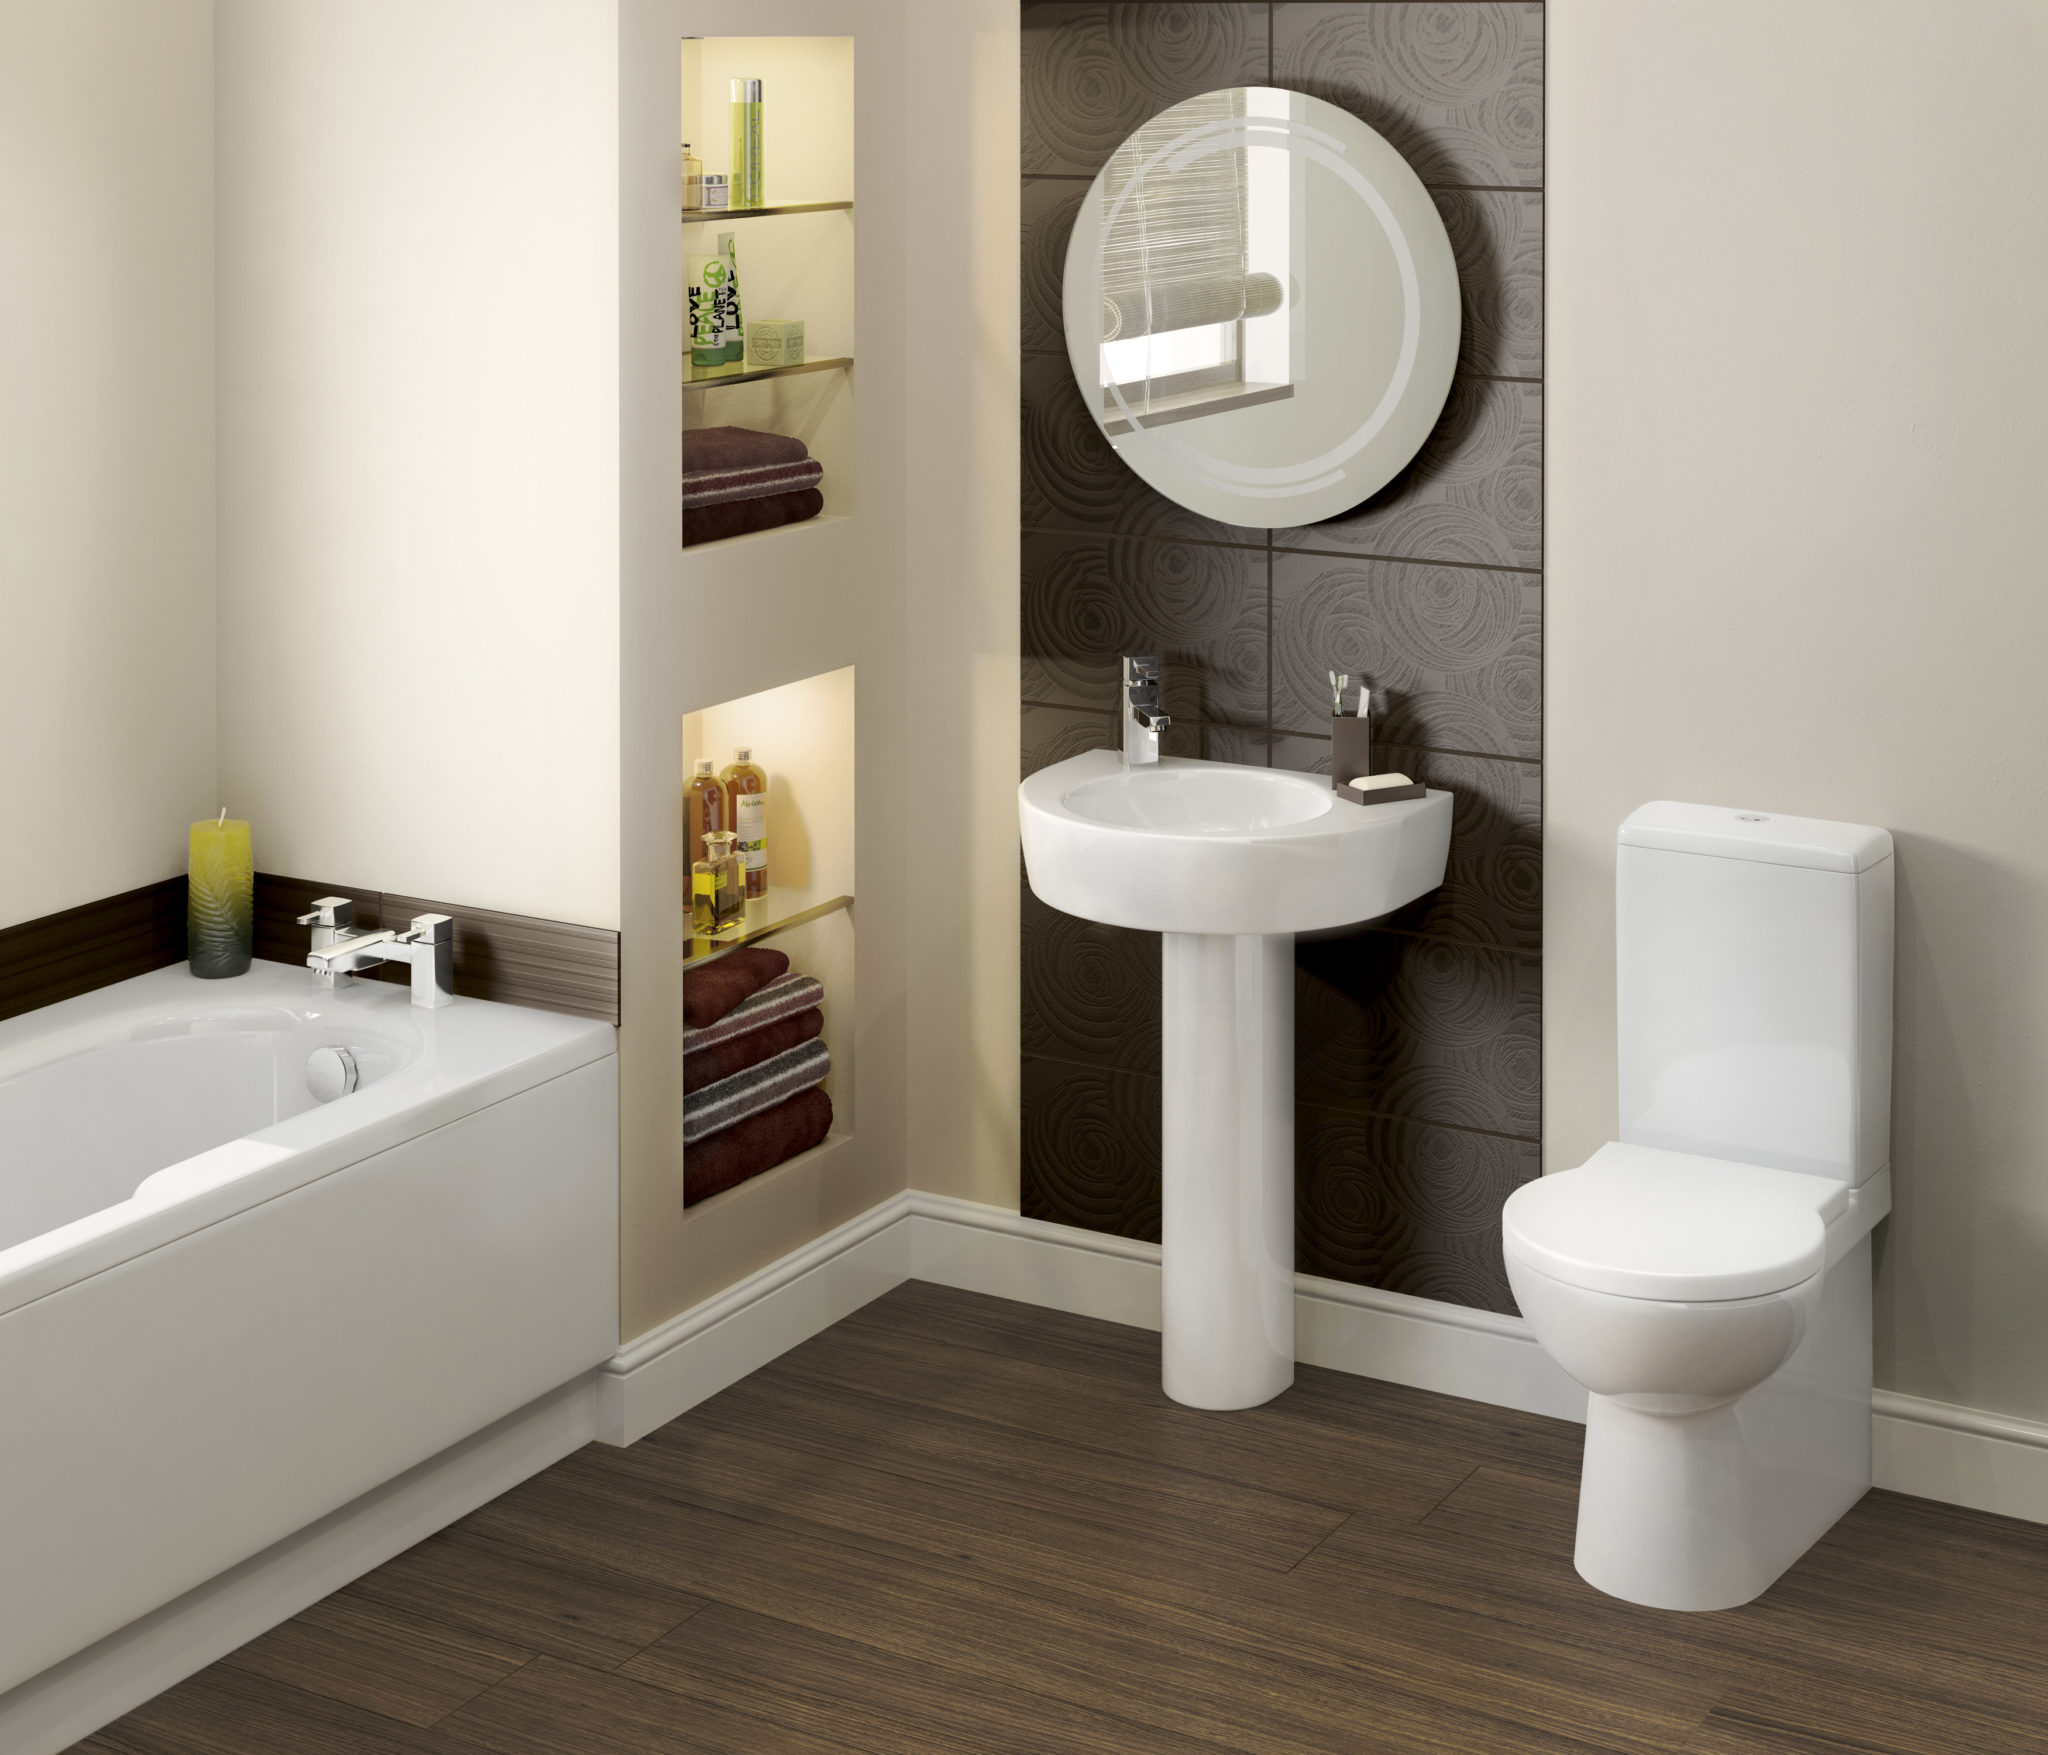 How To Choose A Plumbing Contractor For Your Bathroom Remodel